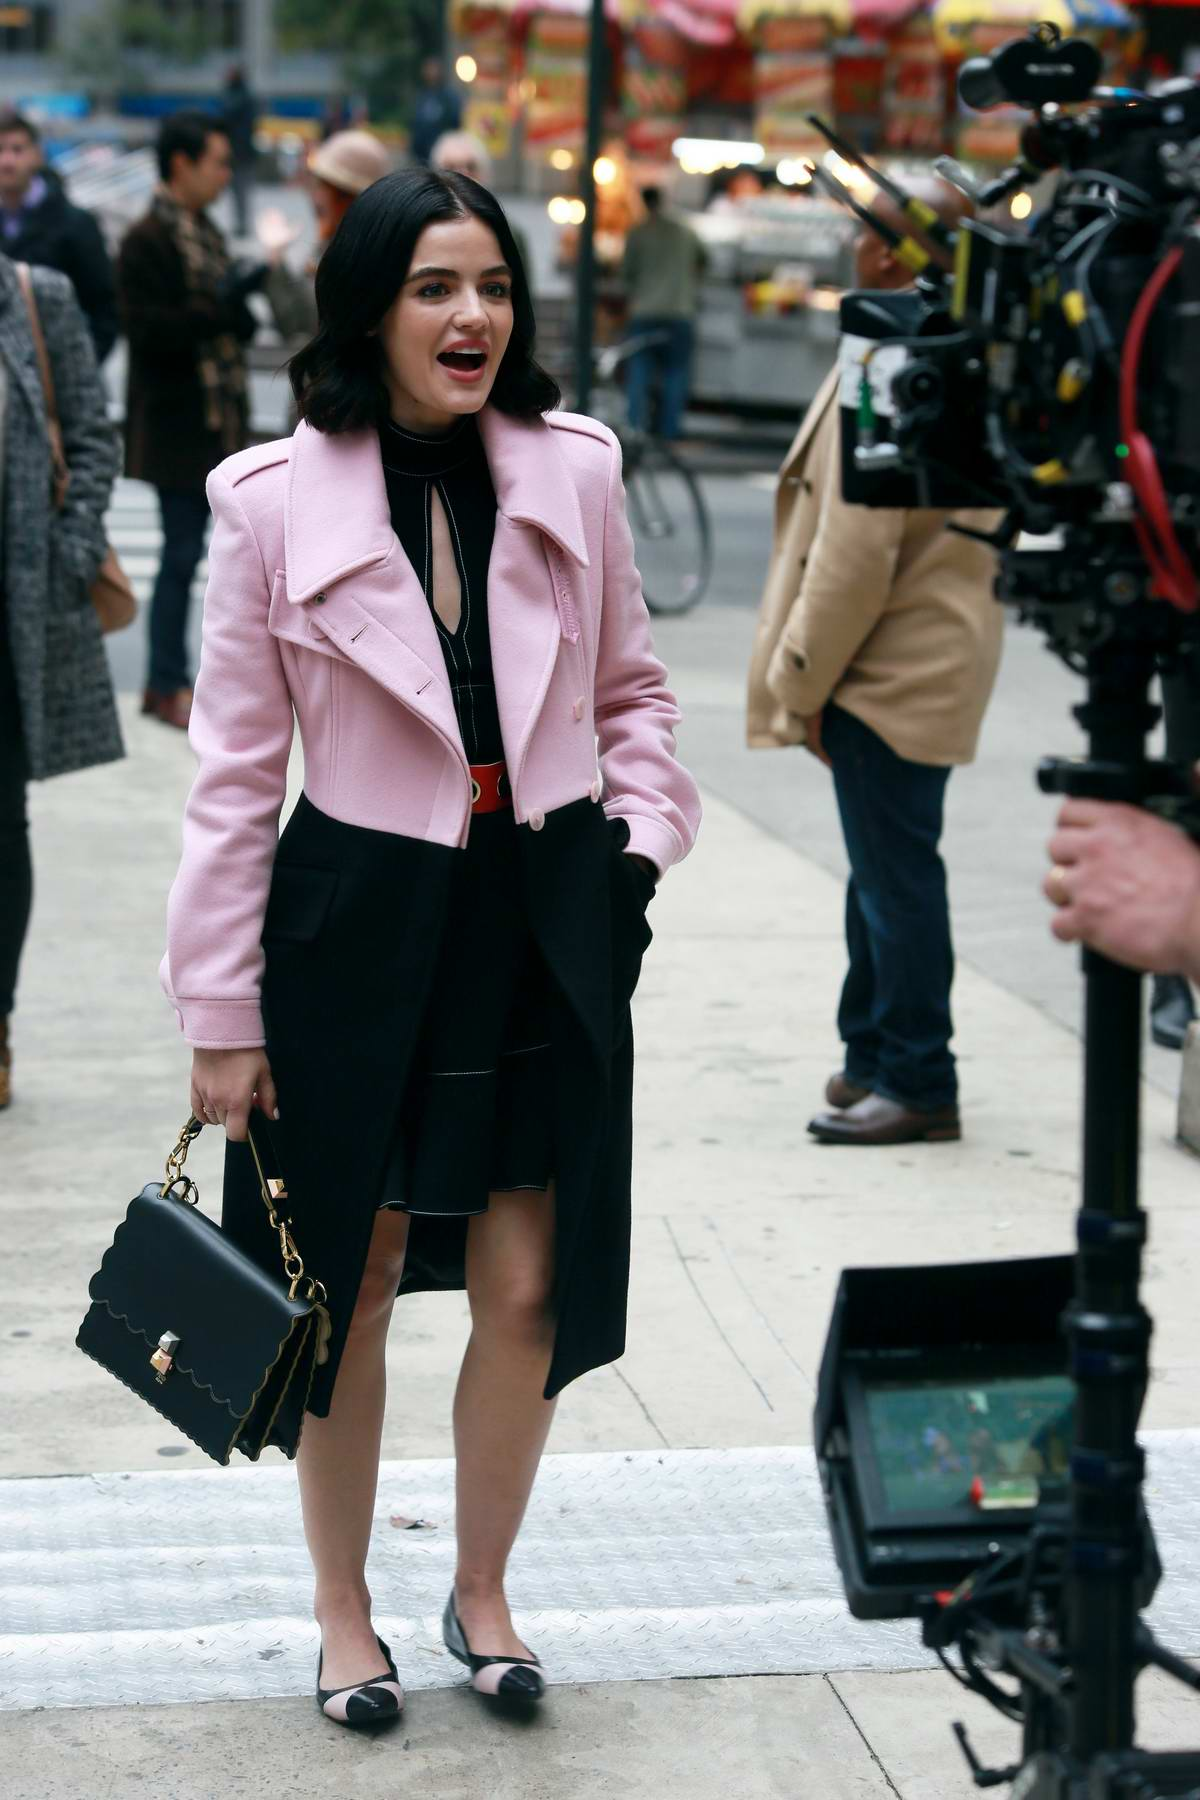 Lucy Hale looks all decked up in pink jacket over a black dress while on the set of 'Katy Keene' in New York City